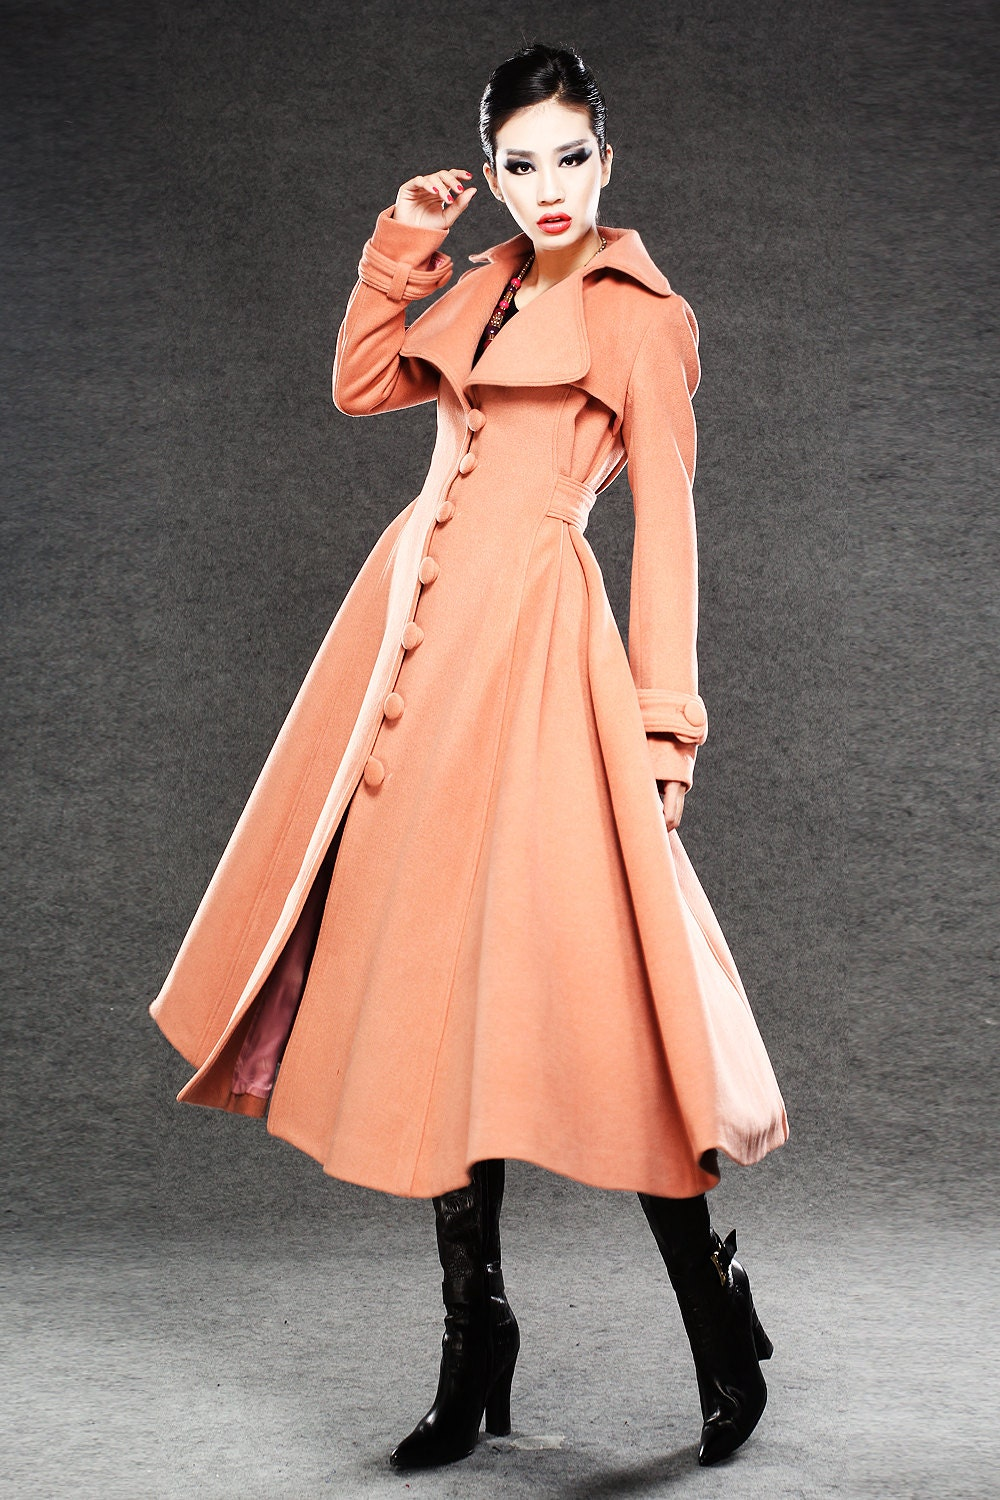 Swing coats are dressy, attractive, and an excellent means to feel your best. Fashionistas and women admire the beauty and design of these vintage swing coats. Look for the right color and material from the many listings to find the one for you.